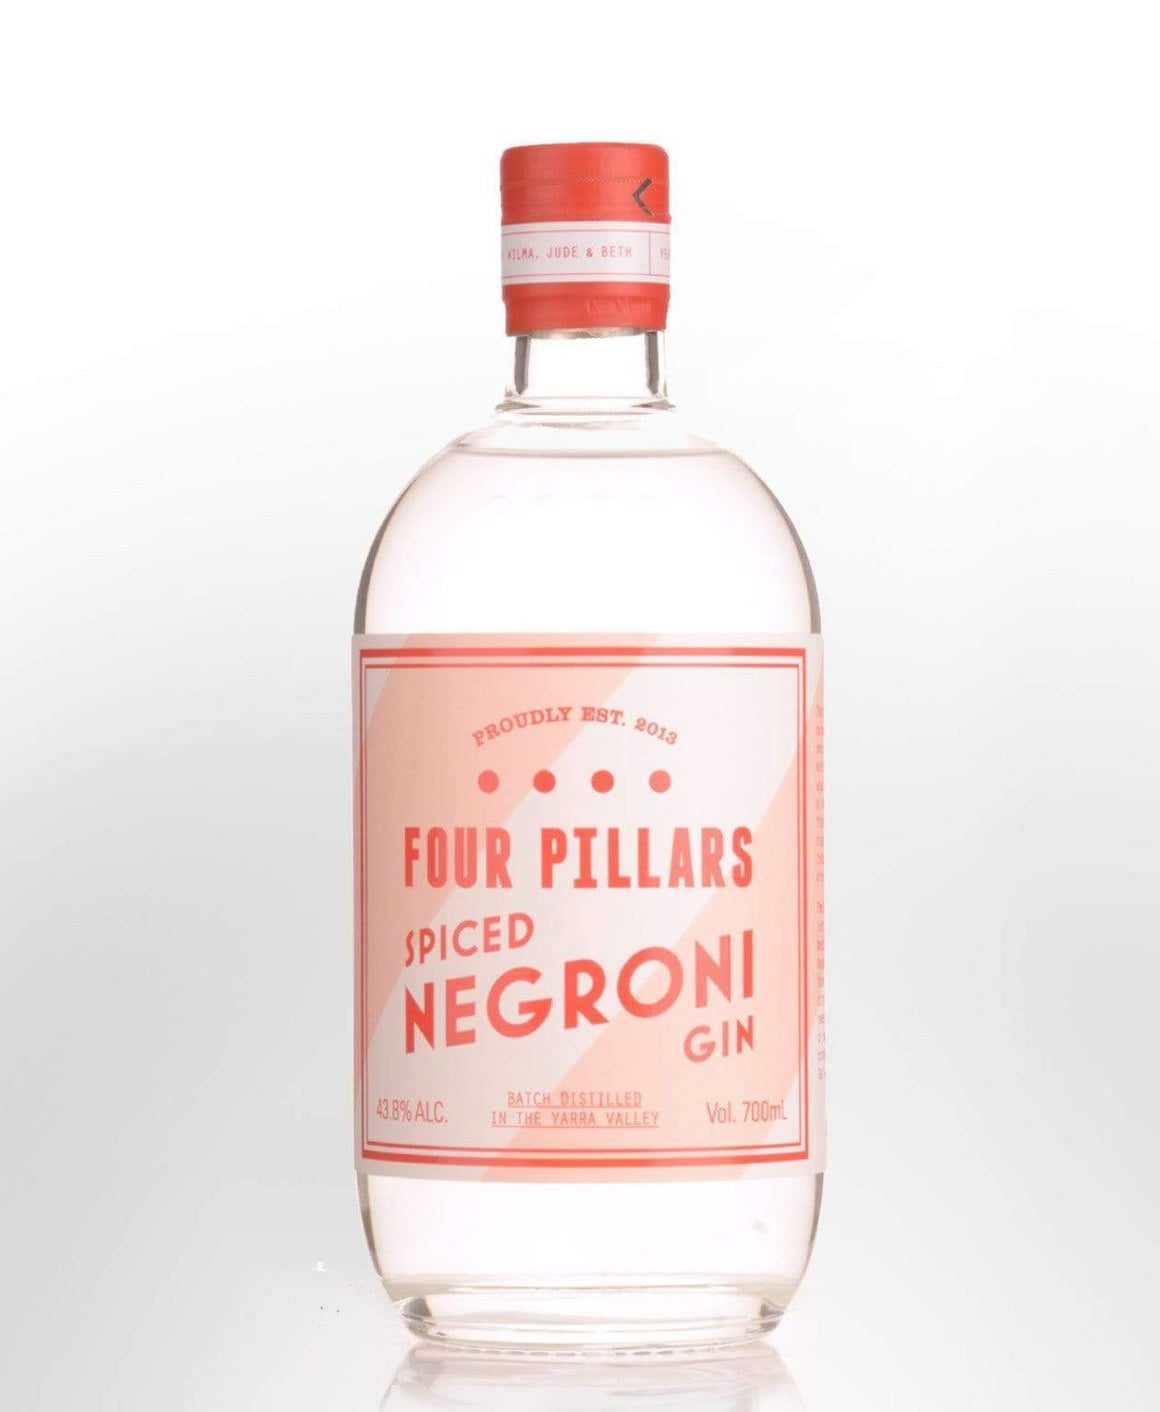 Four Pillars Spiced Negroni Gin 43.8% 700ml